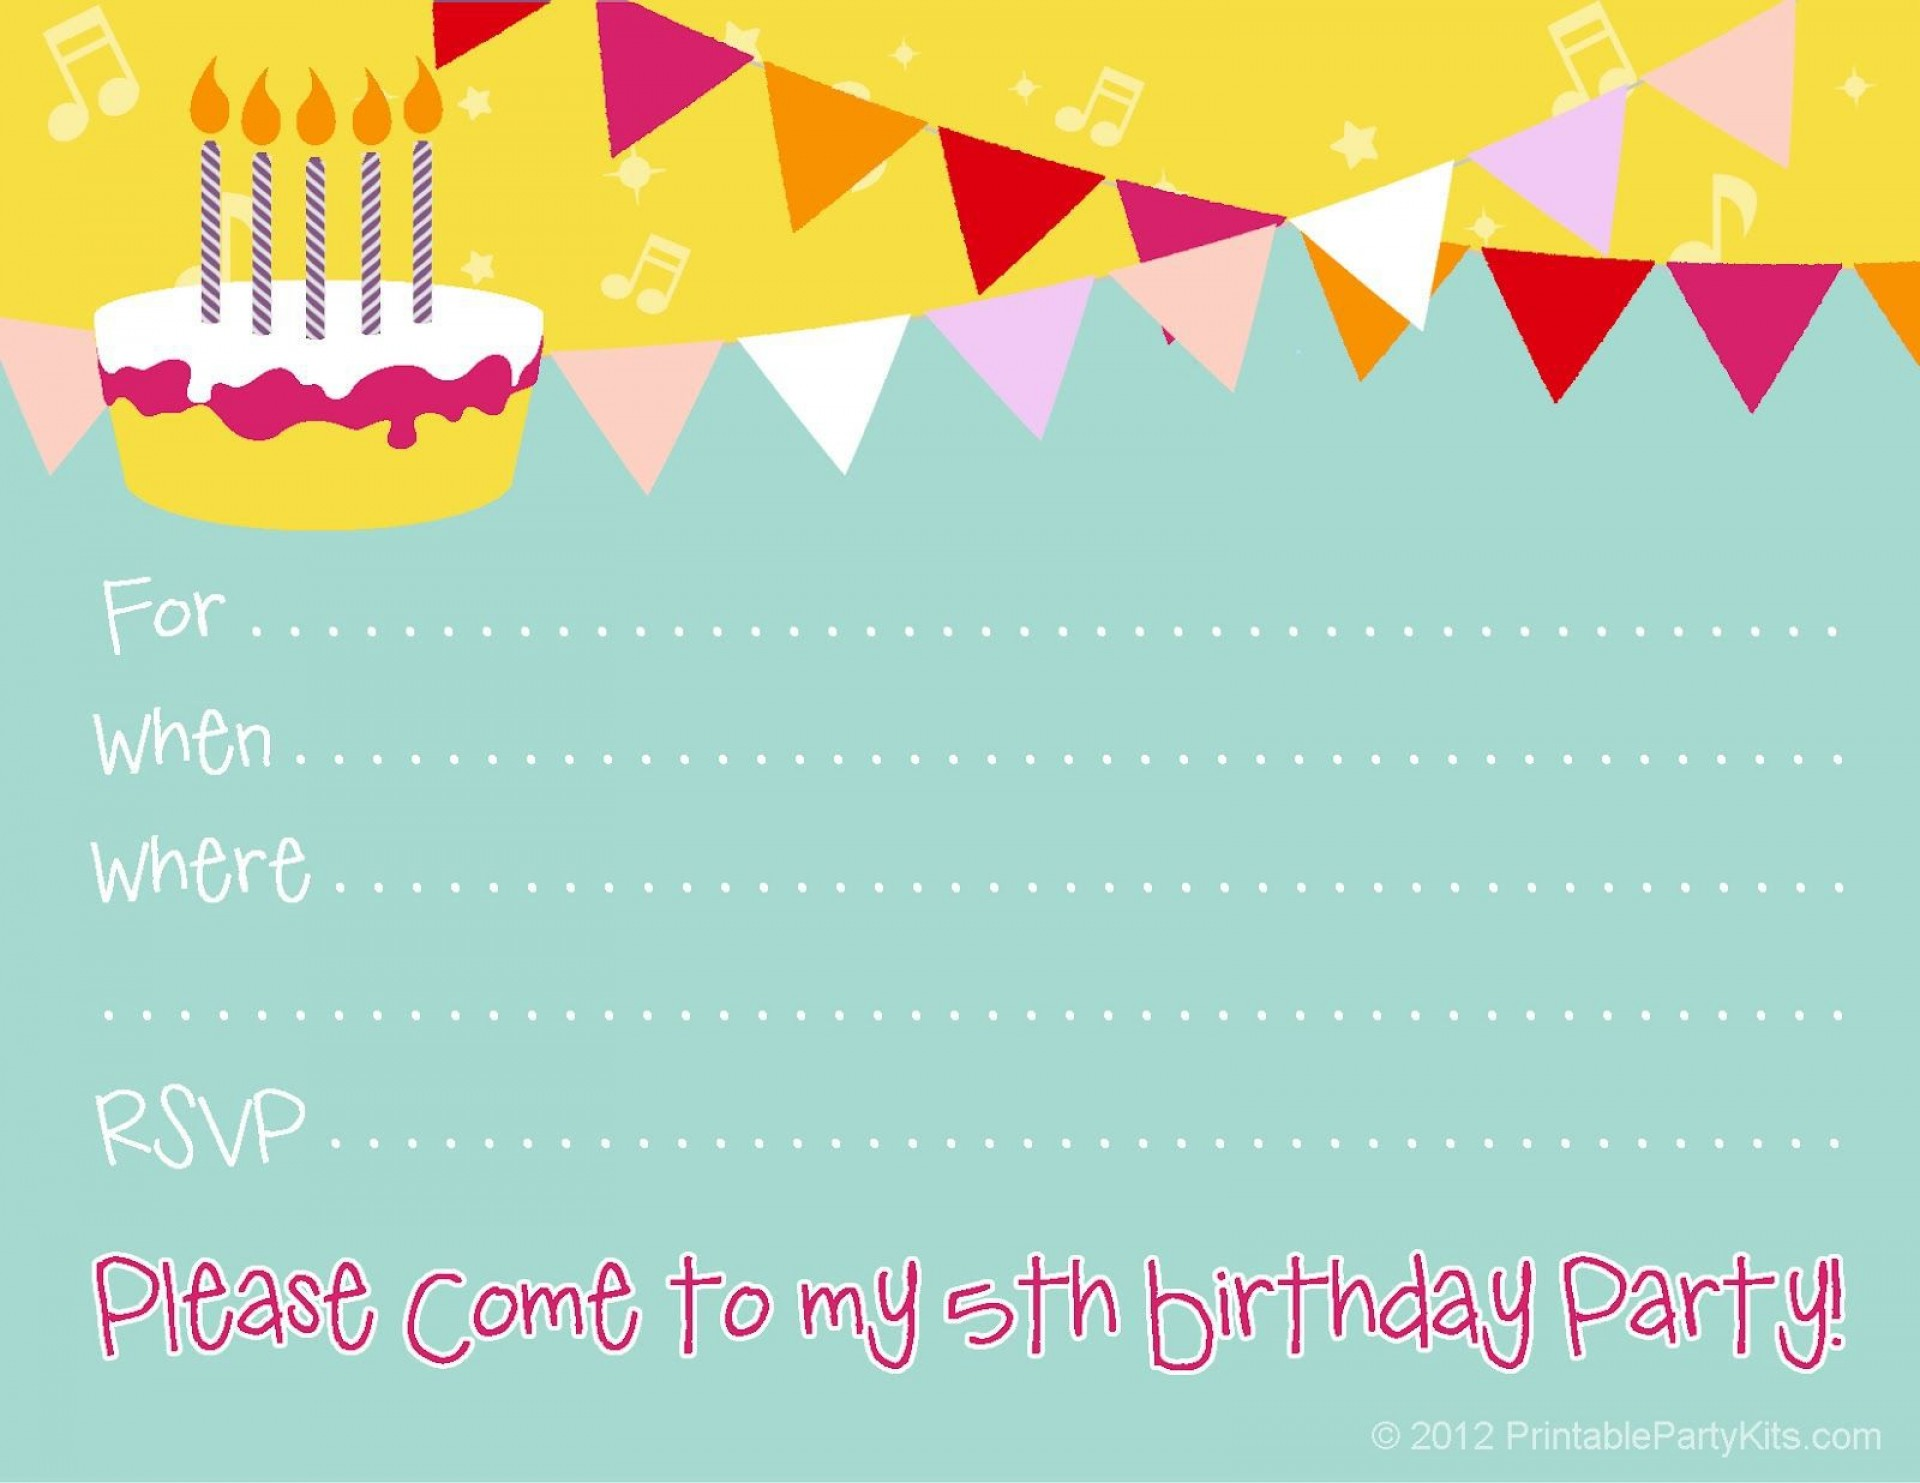 007 Awful Free Online Birthday Party Invitation Template Example  Templates Maker1920